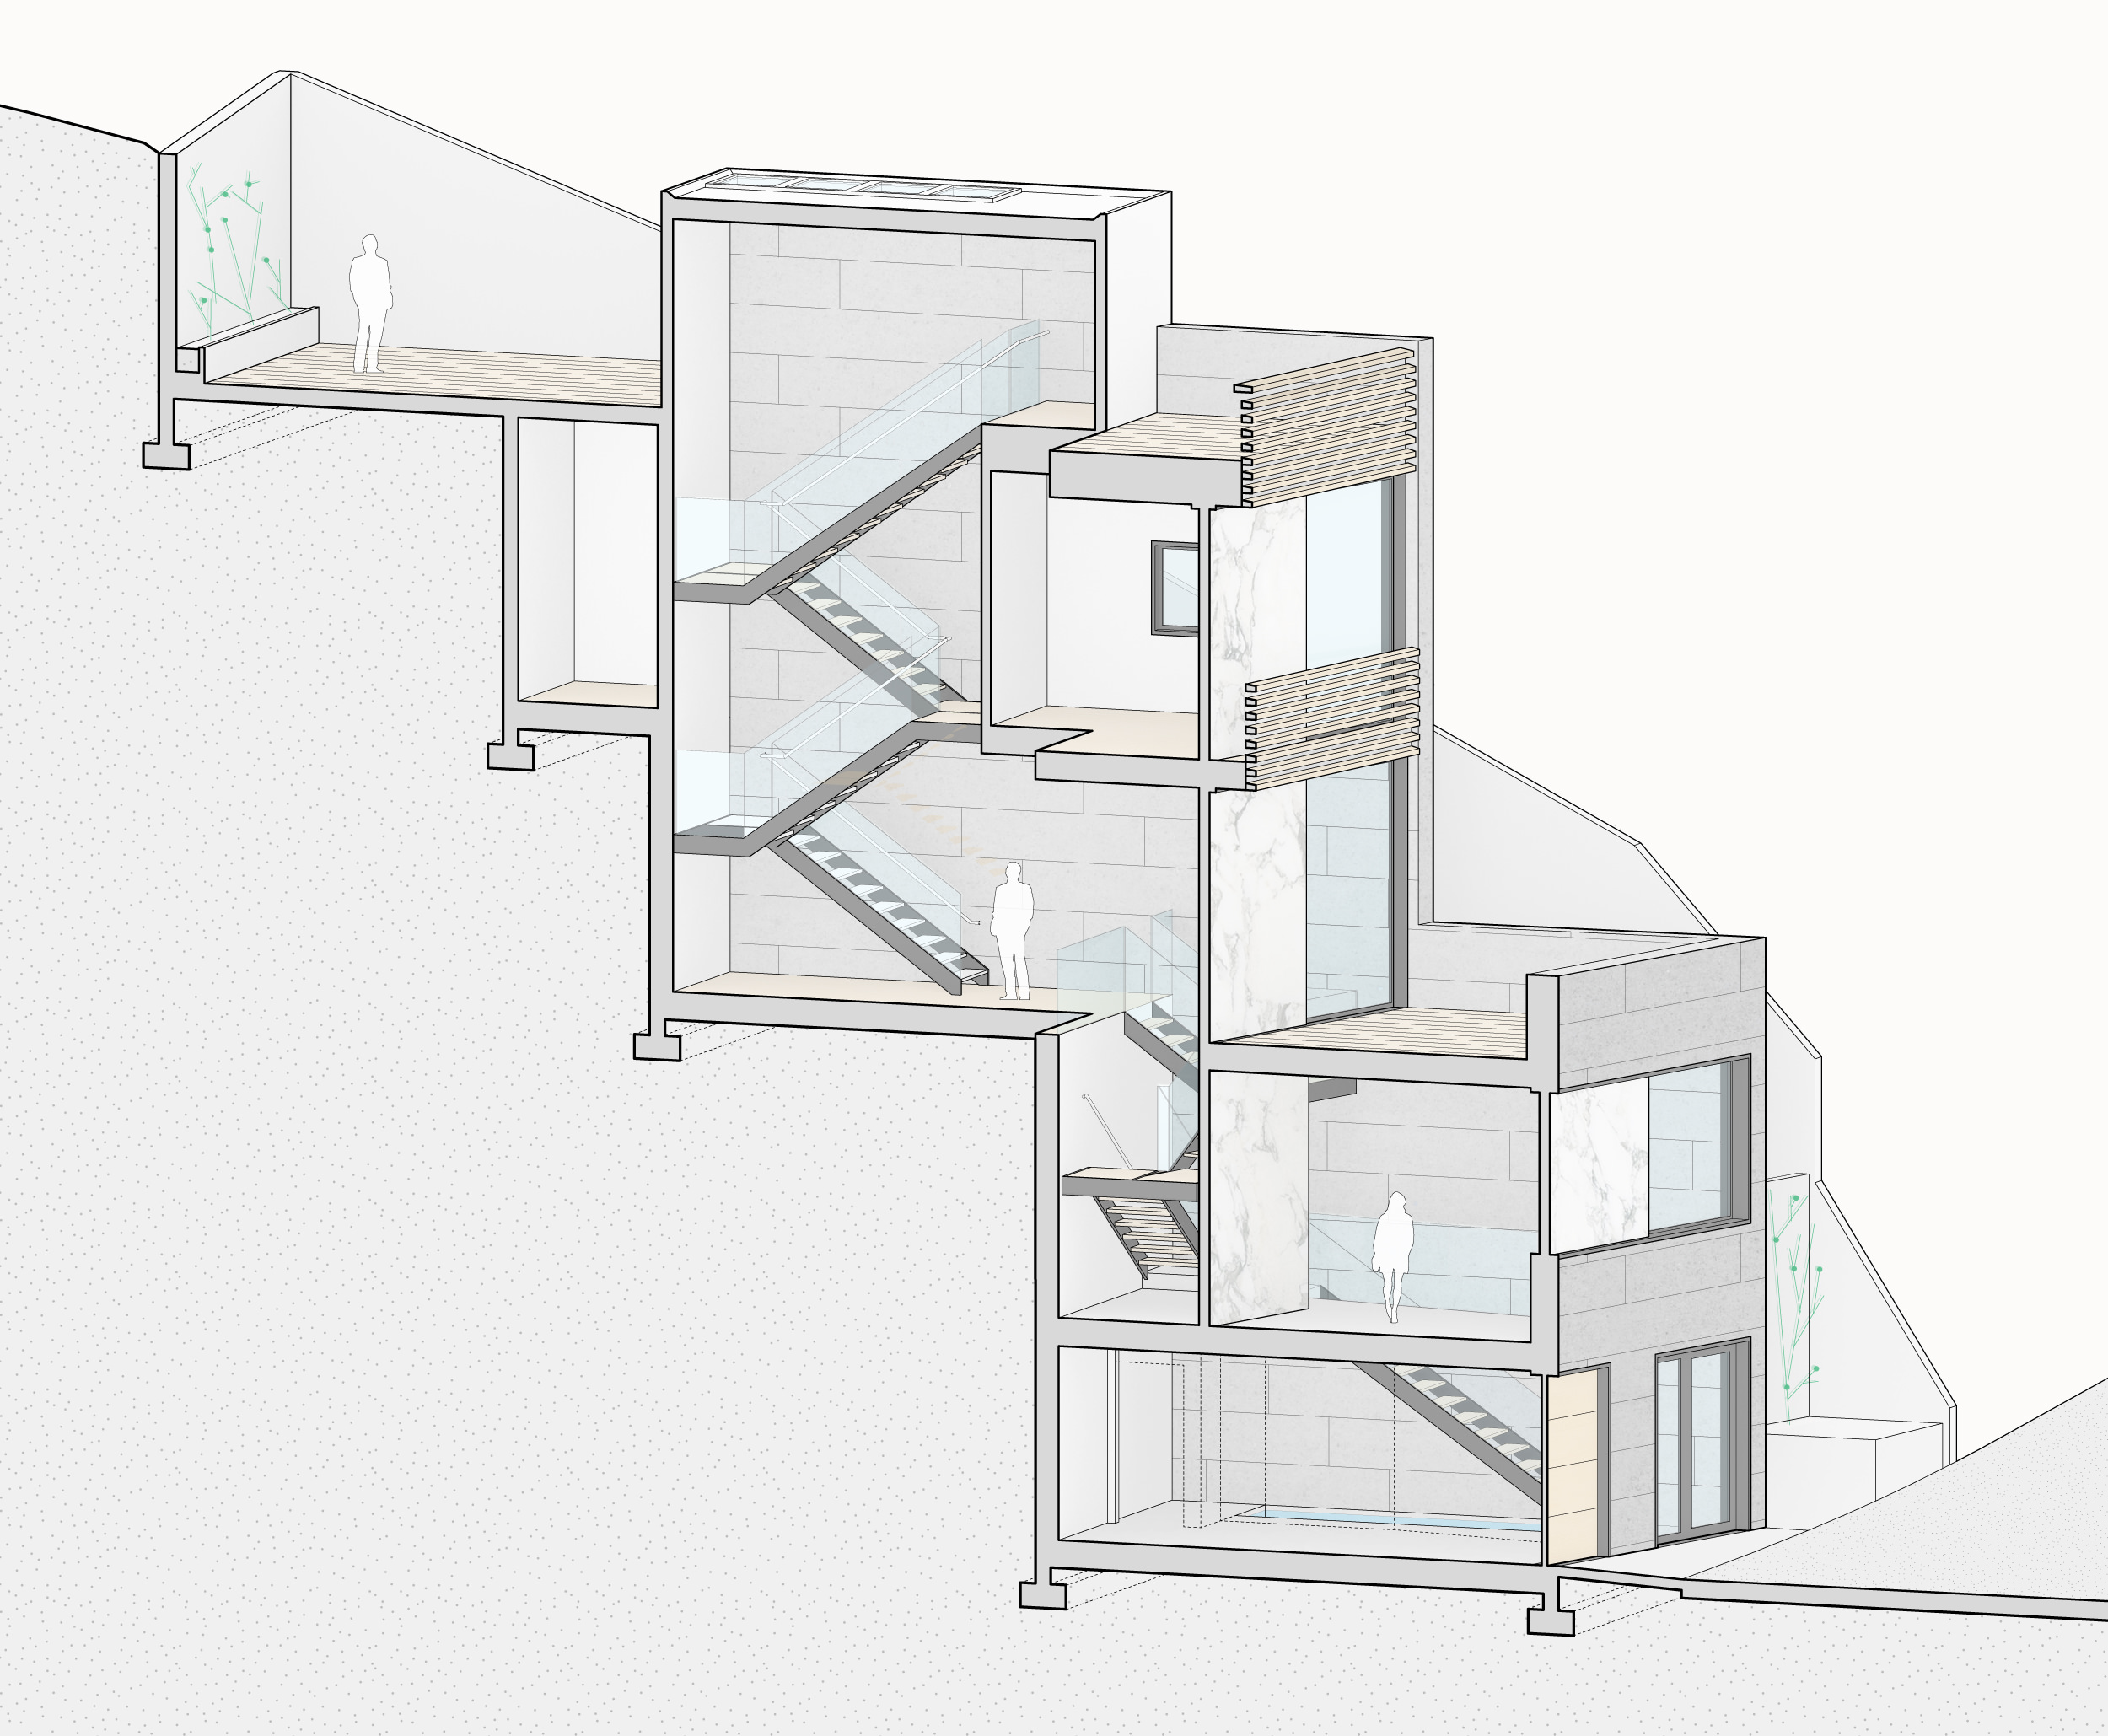 Isometric section.